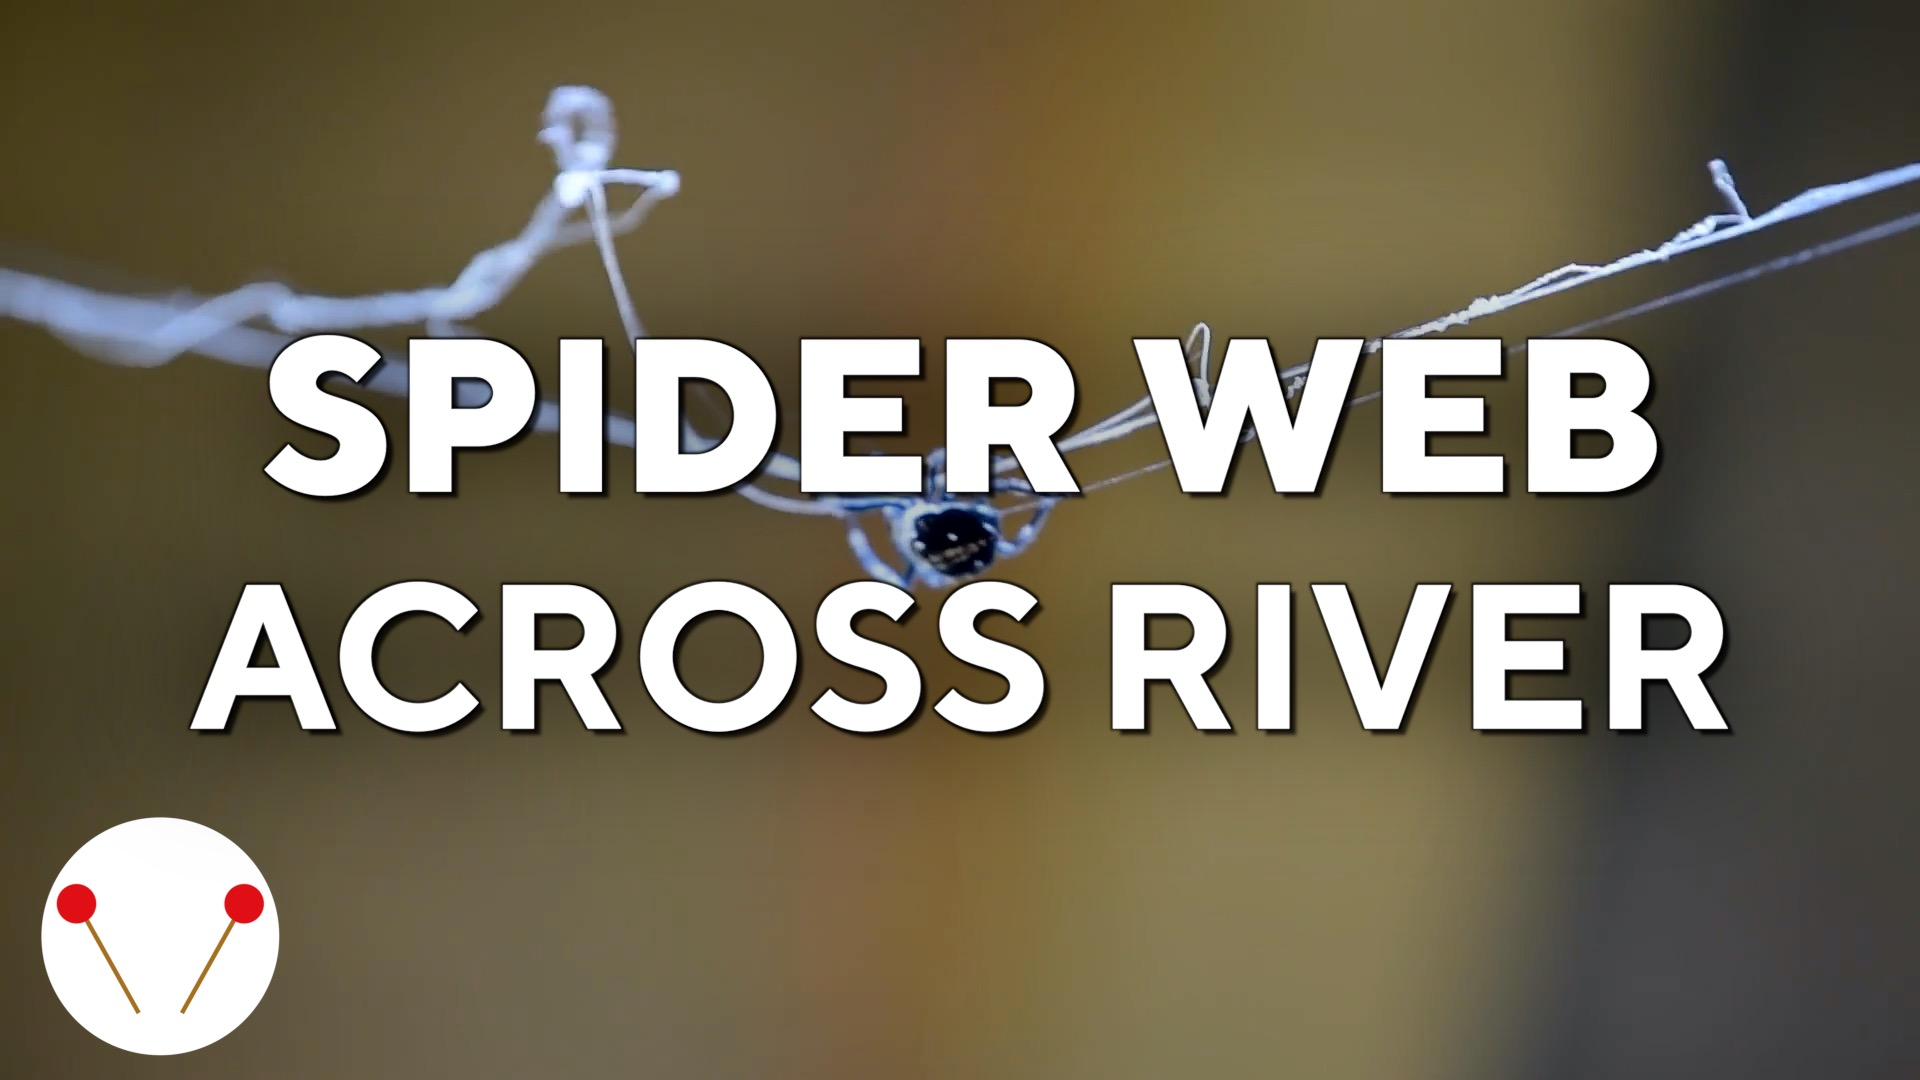 Guess how this spider crosses a river